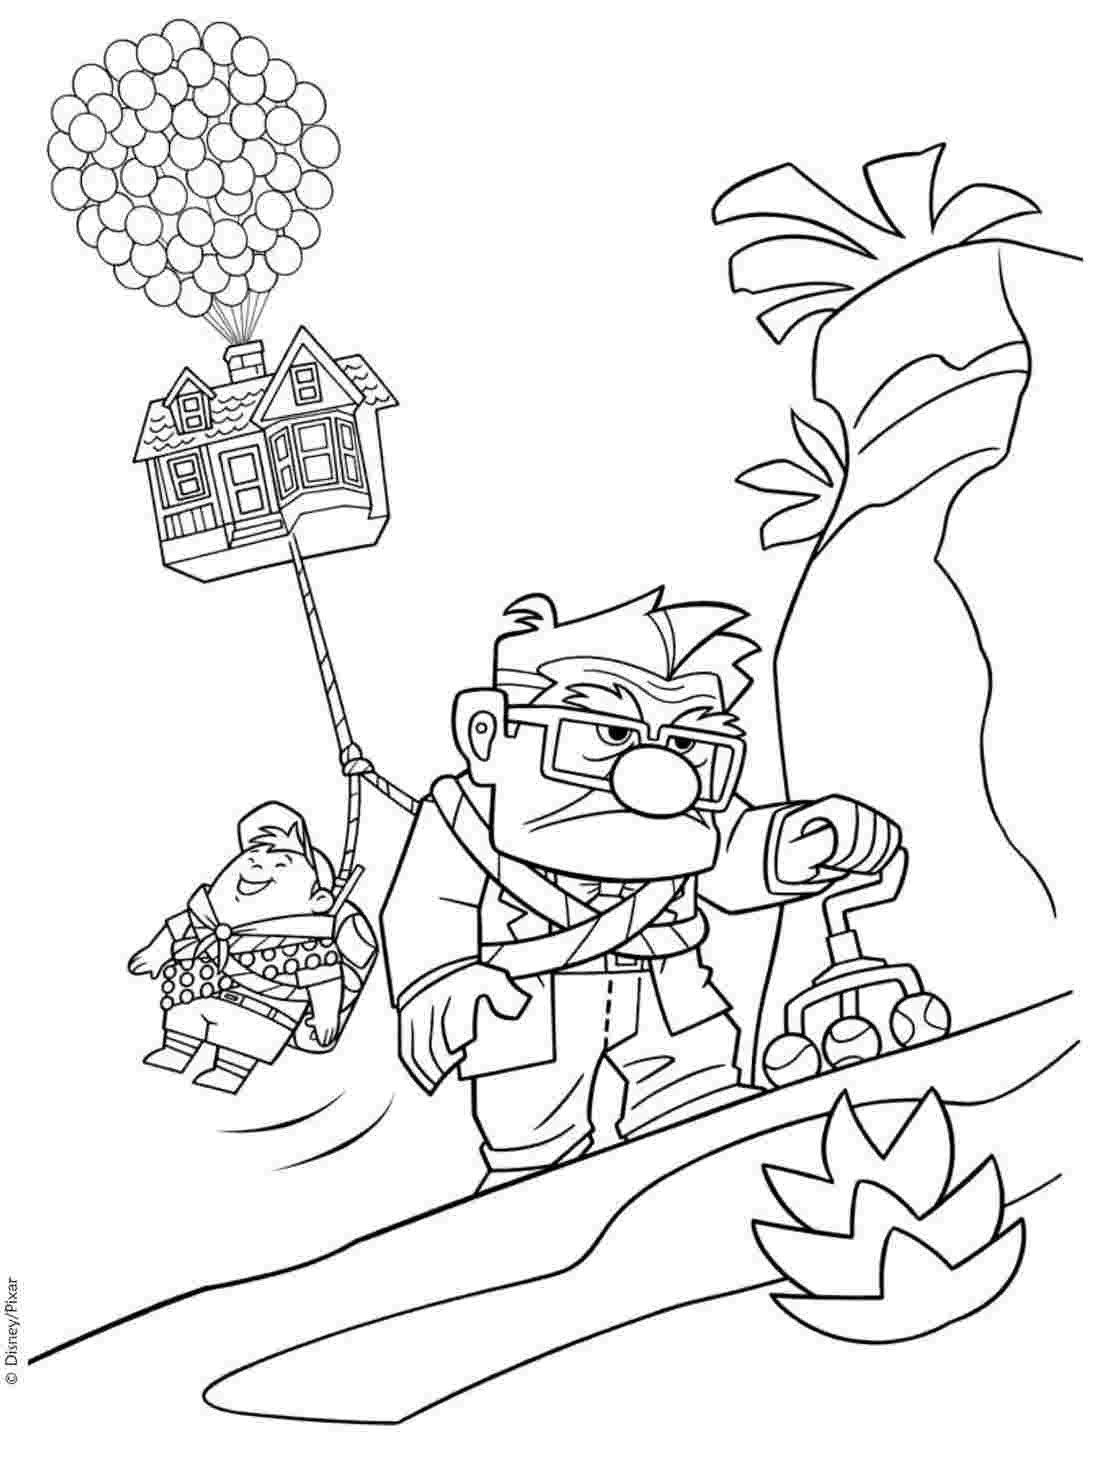 Disney Movie Coloring Pages Coloring Sheets Up Movie Huangfeifo Disney Coloring Pages Cartoon Coloring Pages Lego Coloring Pages